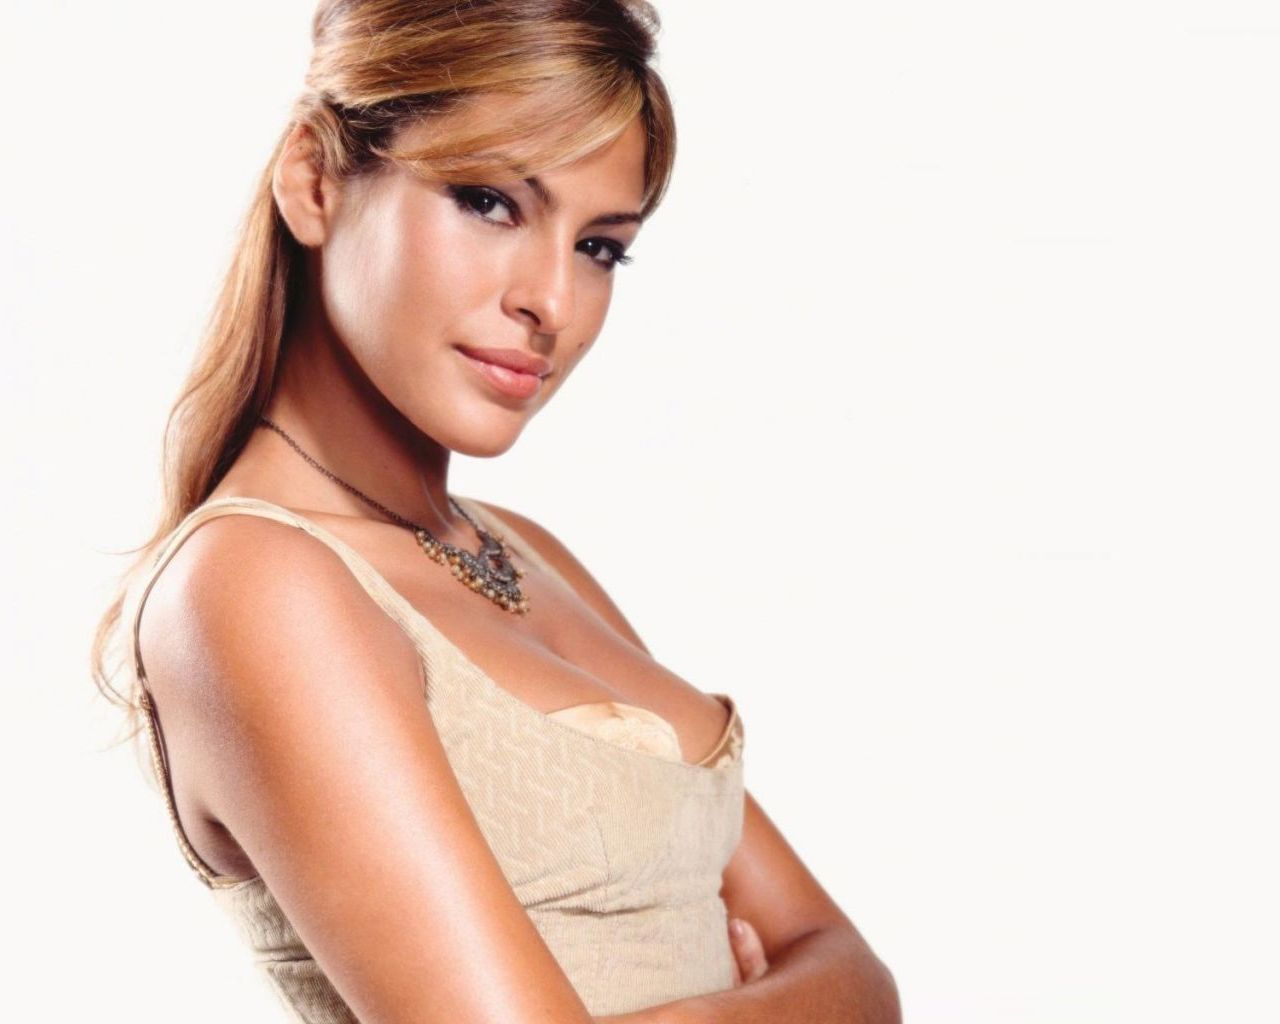 Cleavage Eva Mendes nudes (29 photo), Pussy, Is a cute, Feet, cameltoe 2018